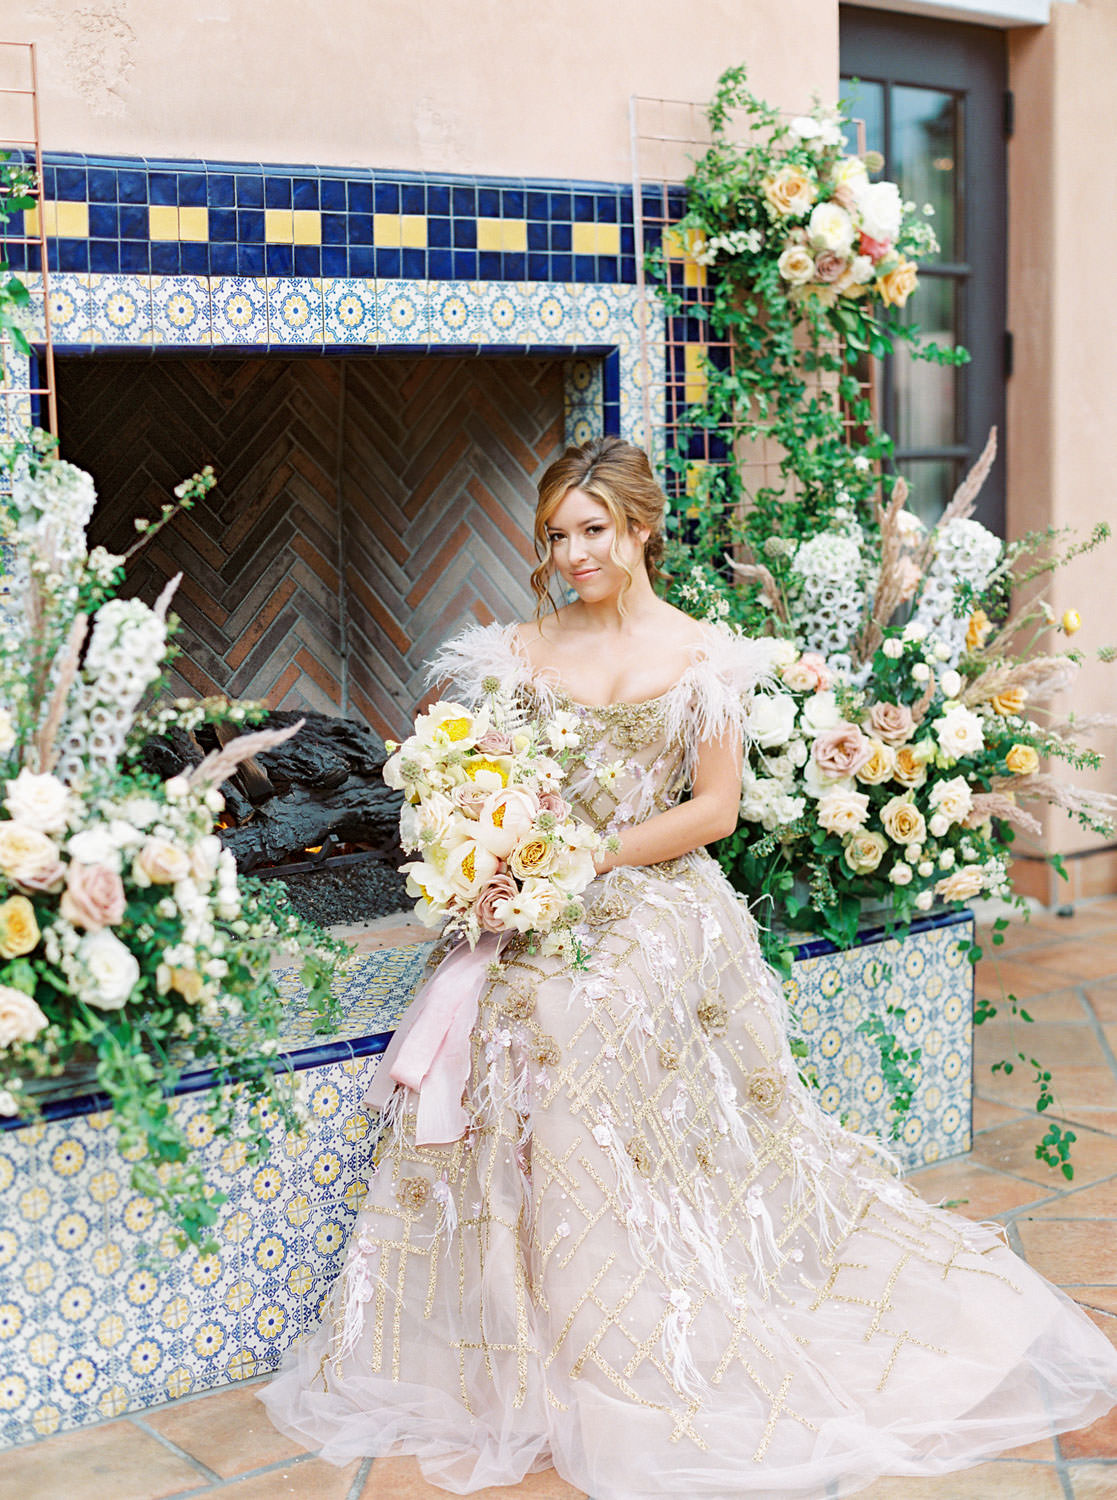 Bride posing with blush, yellow, ivory bouquet in front of pink fireplace with blue and golden tiles for ceremony backdrop adorned with large floral installations. Marchesa couture gown with blush feathers, gold lines, and floral embellishments. Honey and Beekeeper Inspired Wedding on sunrise terrace patio at Rancho Valencia on film by Cavin Elizabeth Photography